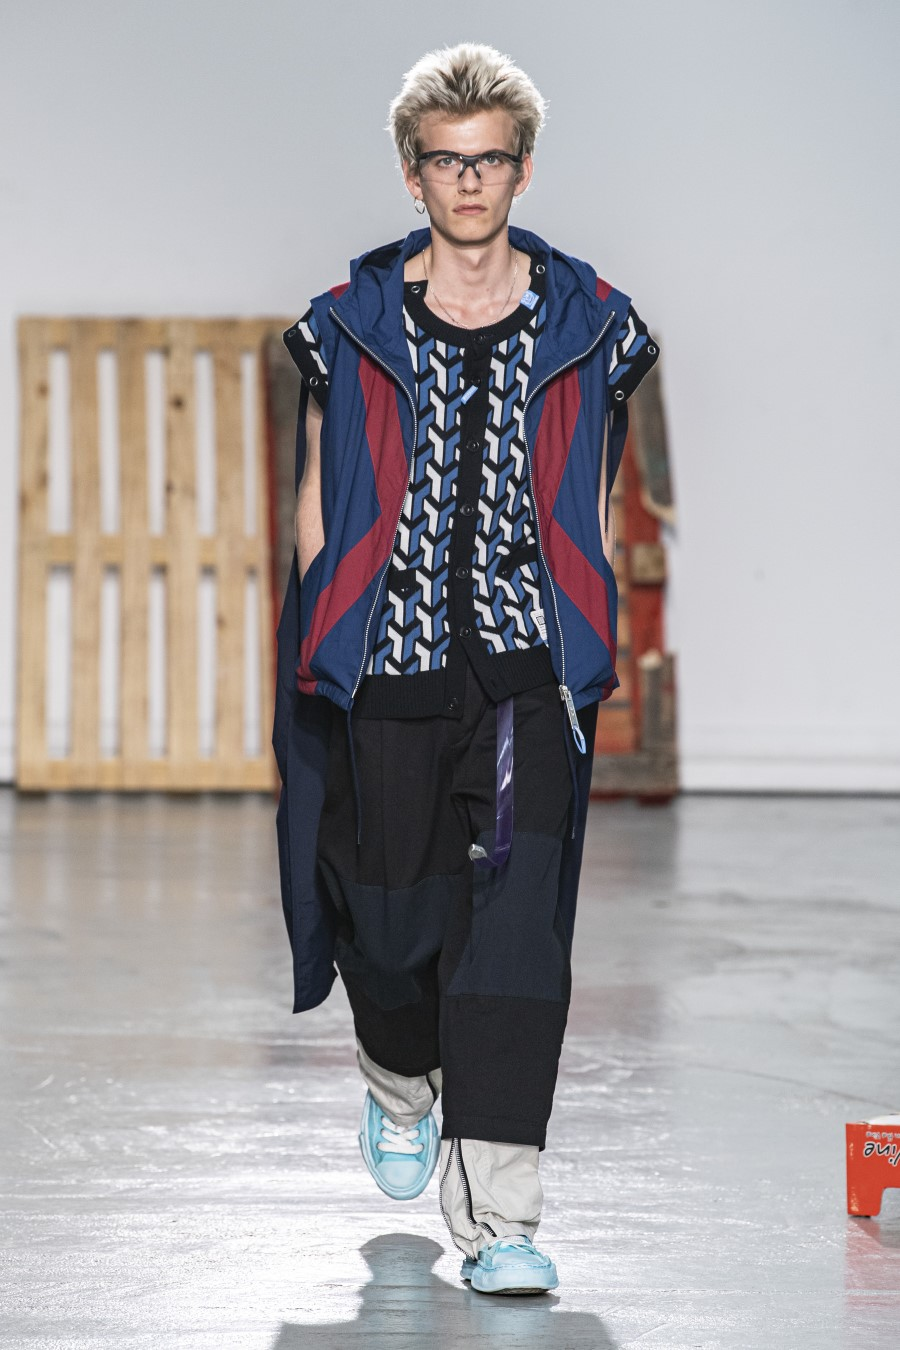 Maison Mihara Yasuhiro - Printemps-Été 2020 - Paris Fashion Week